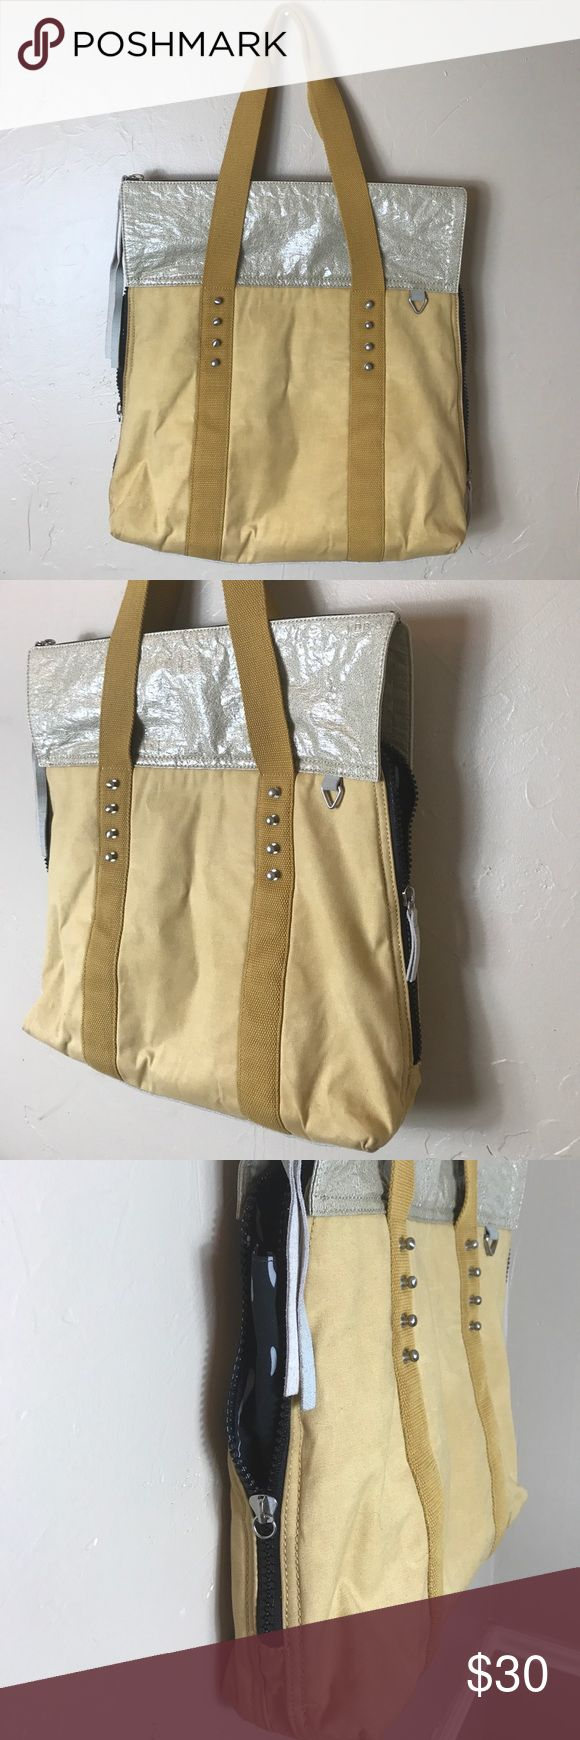 Yellow canvas Funky Laptop purse unisex cotton Preowned jus missing one tassel on the side zipper- see pics. Normal wear. Euc KDB  Bags Totes